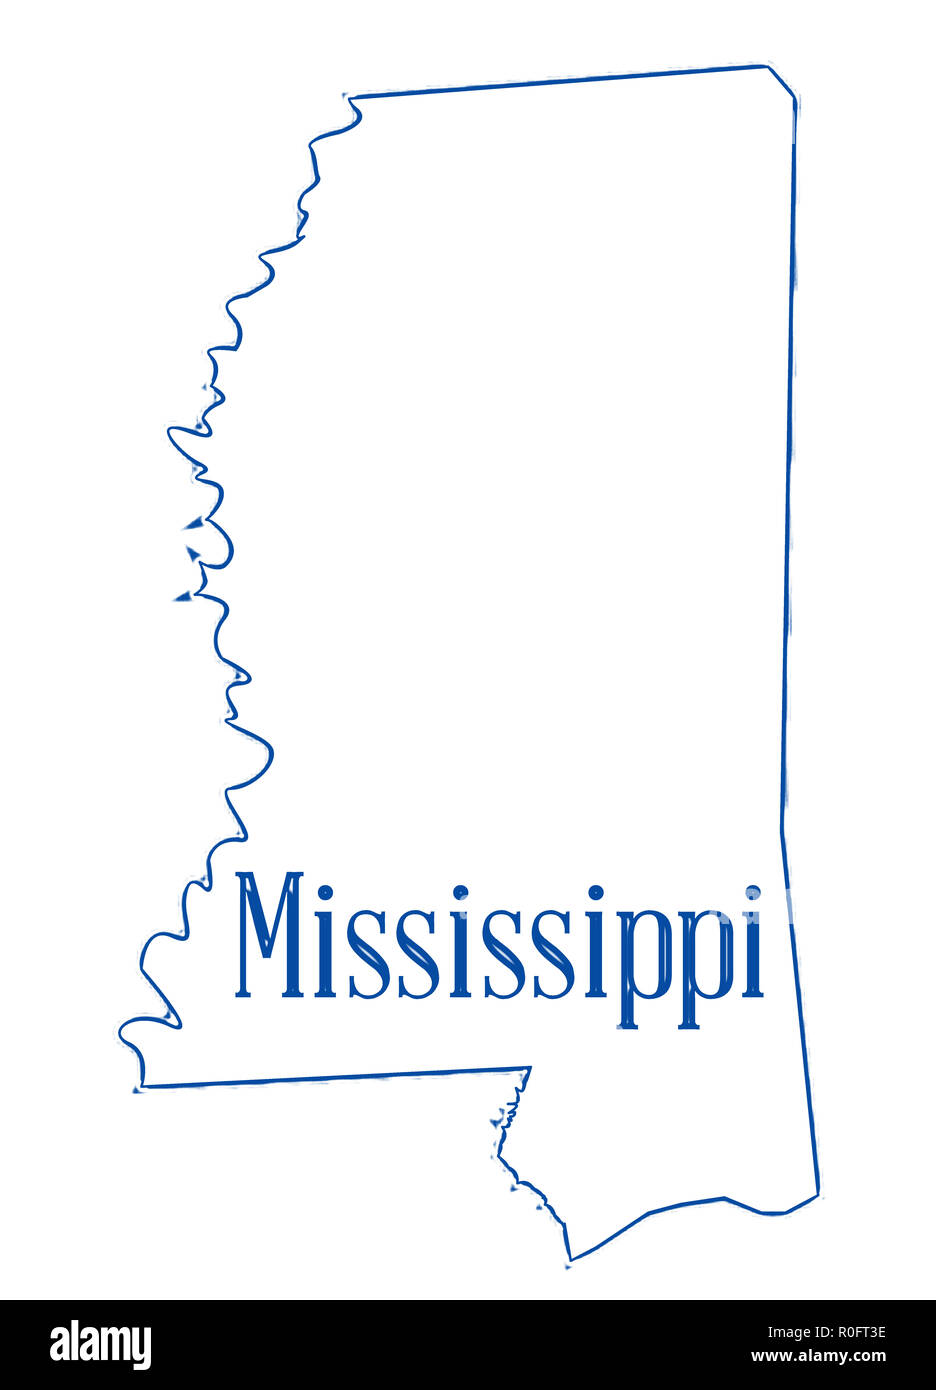 Mississippi State Map Outline.State Map Outline Of Mississippi Over A White Background Stock Photo